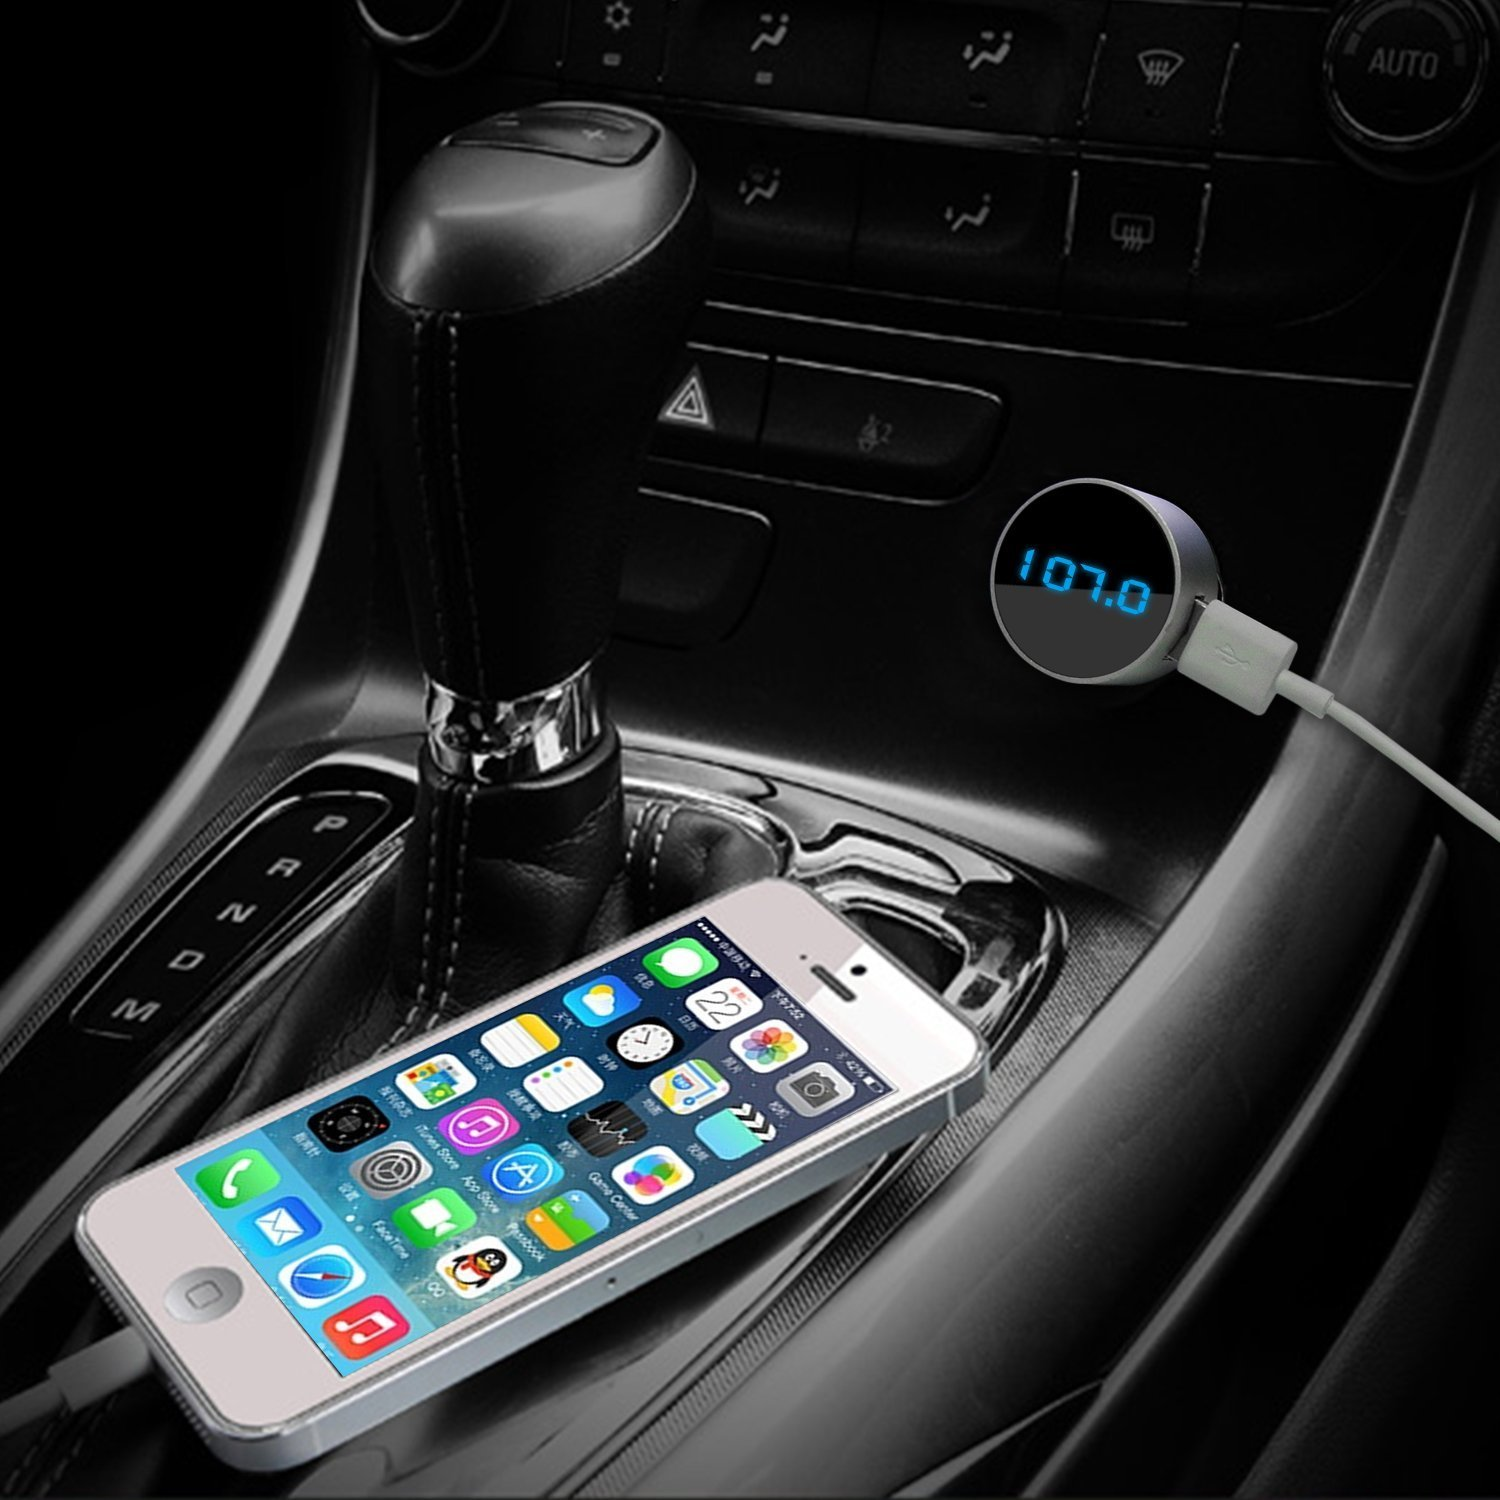 Listen to music on phone in car without bluetooth or aux